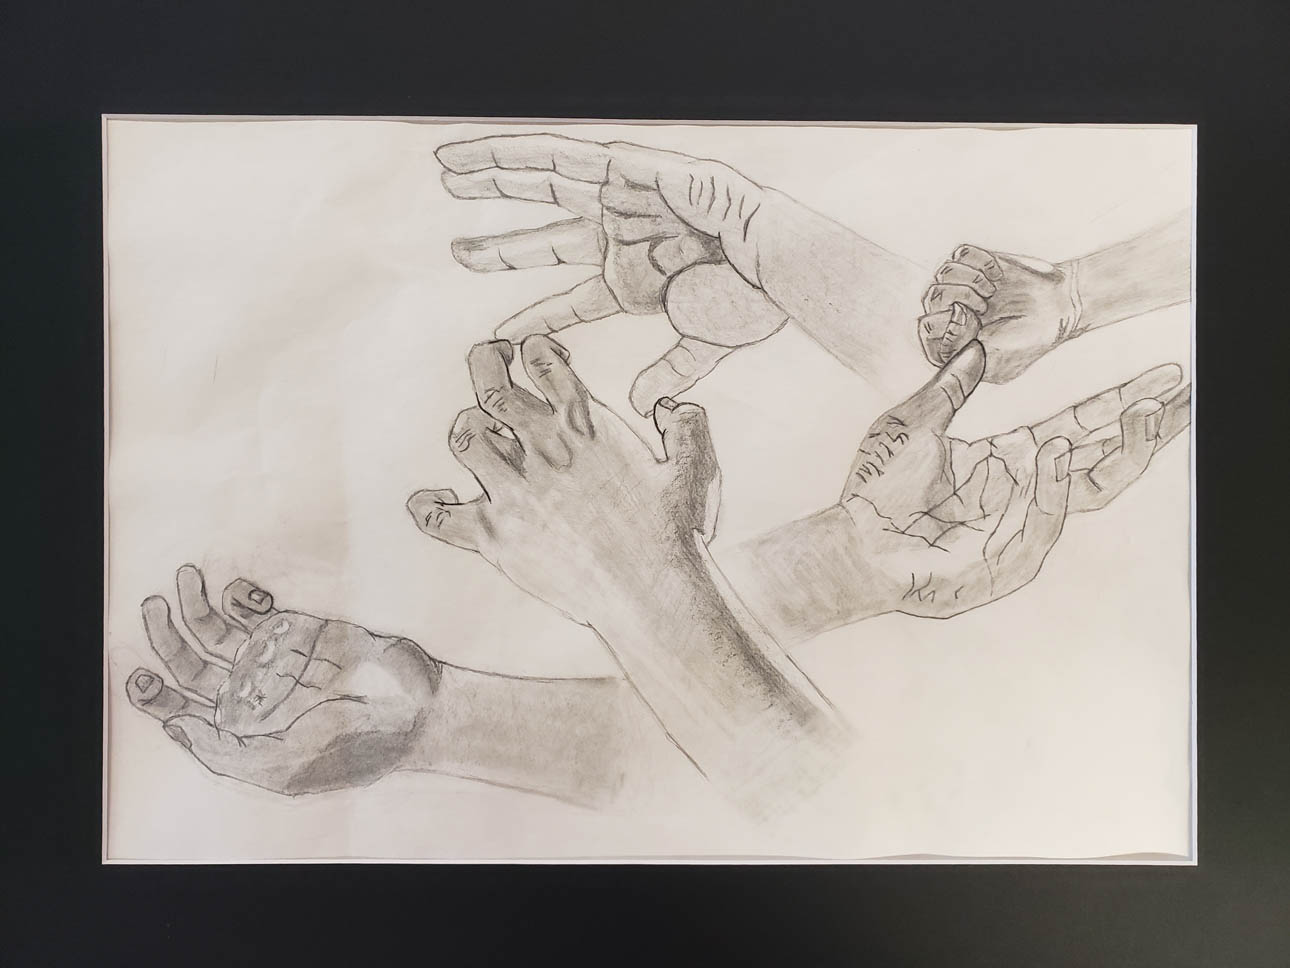 Hands, inspired by Perard